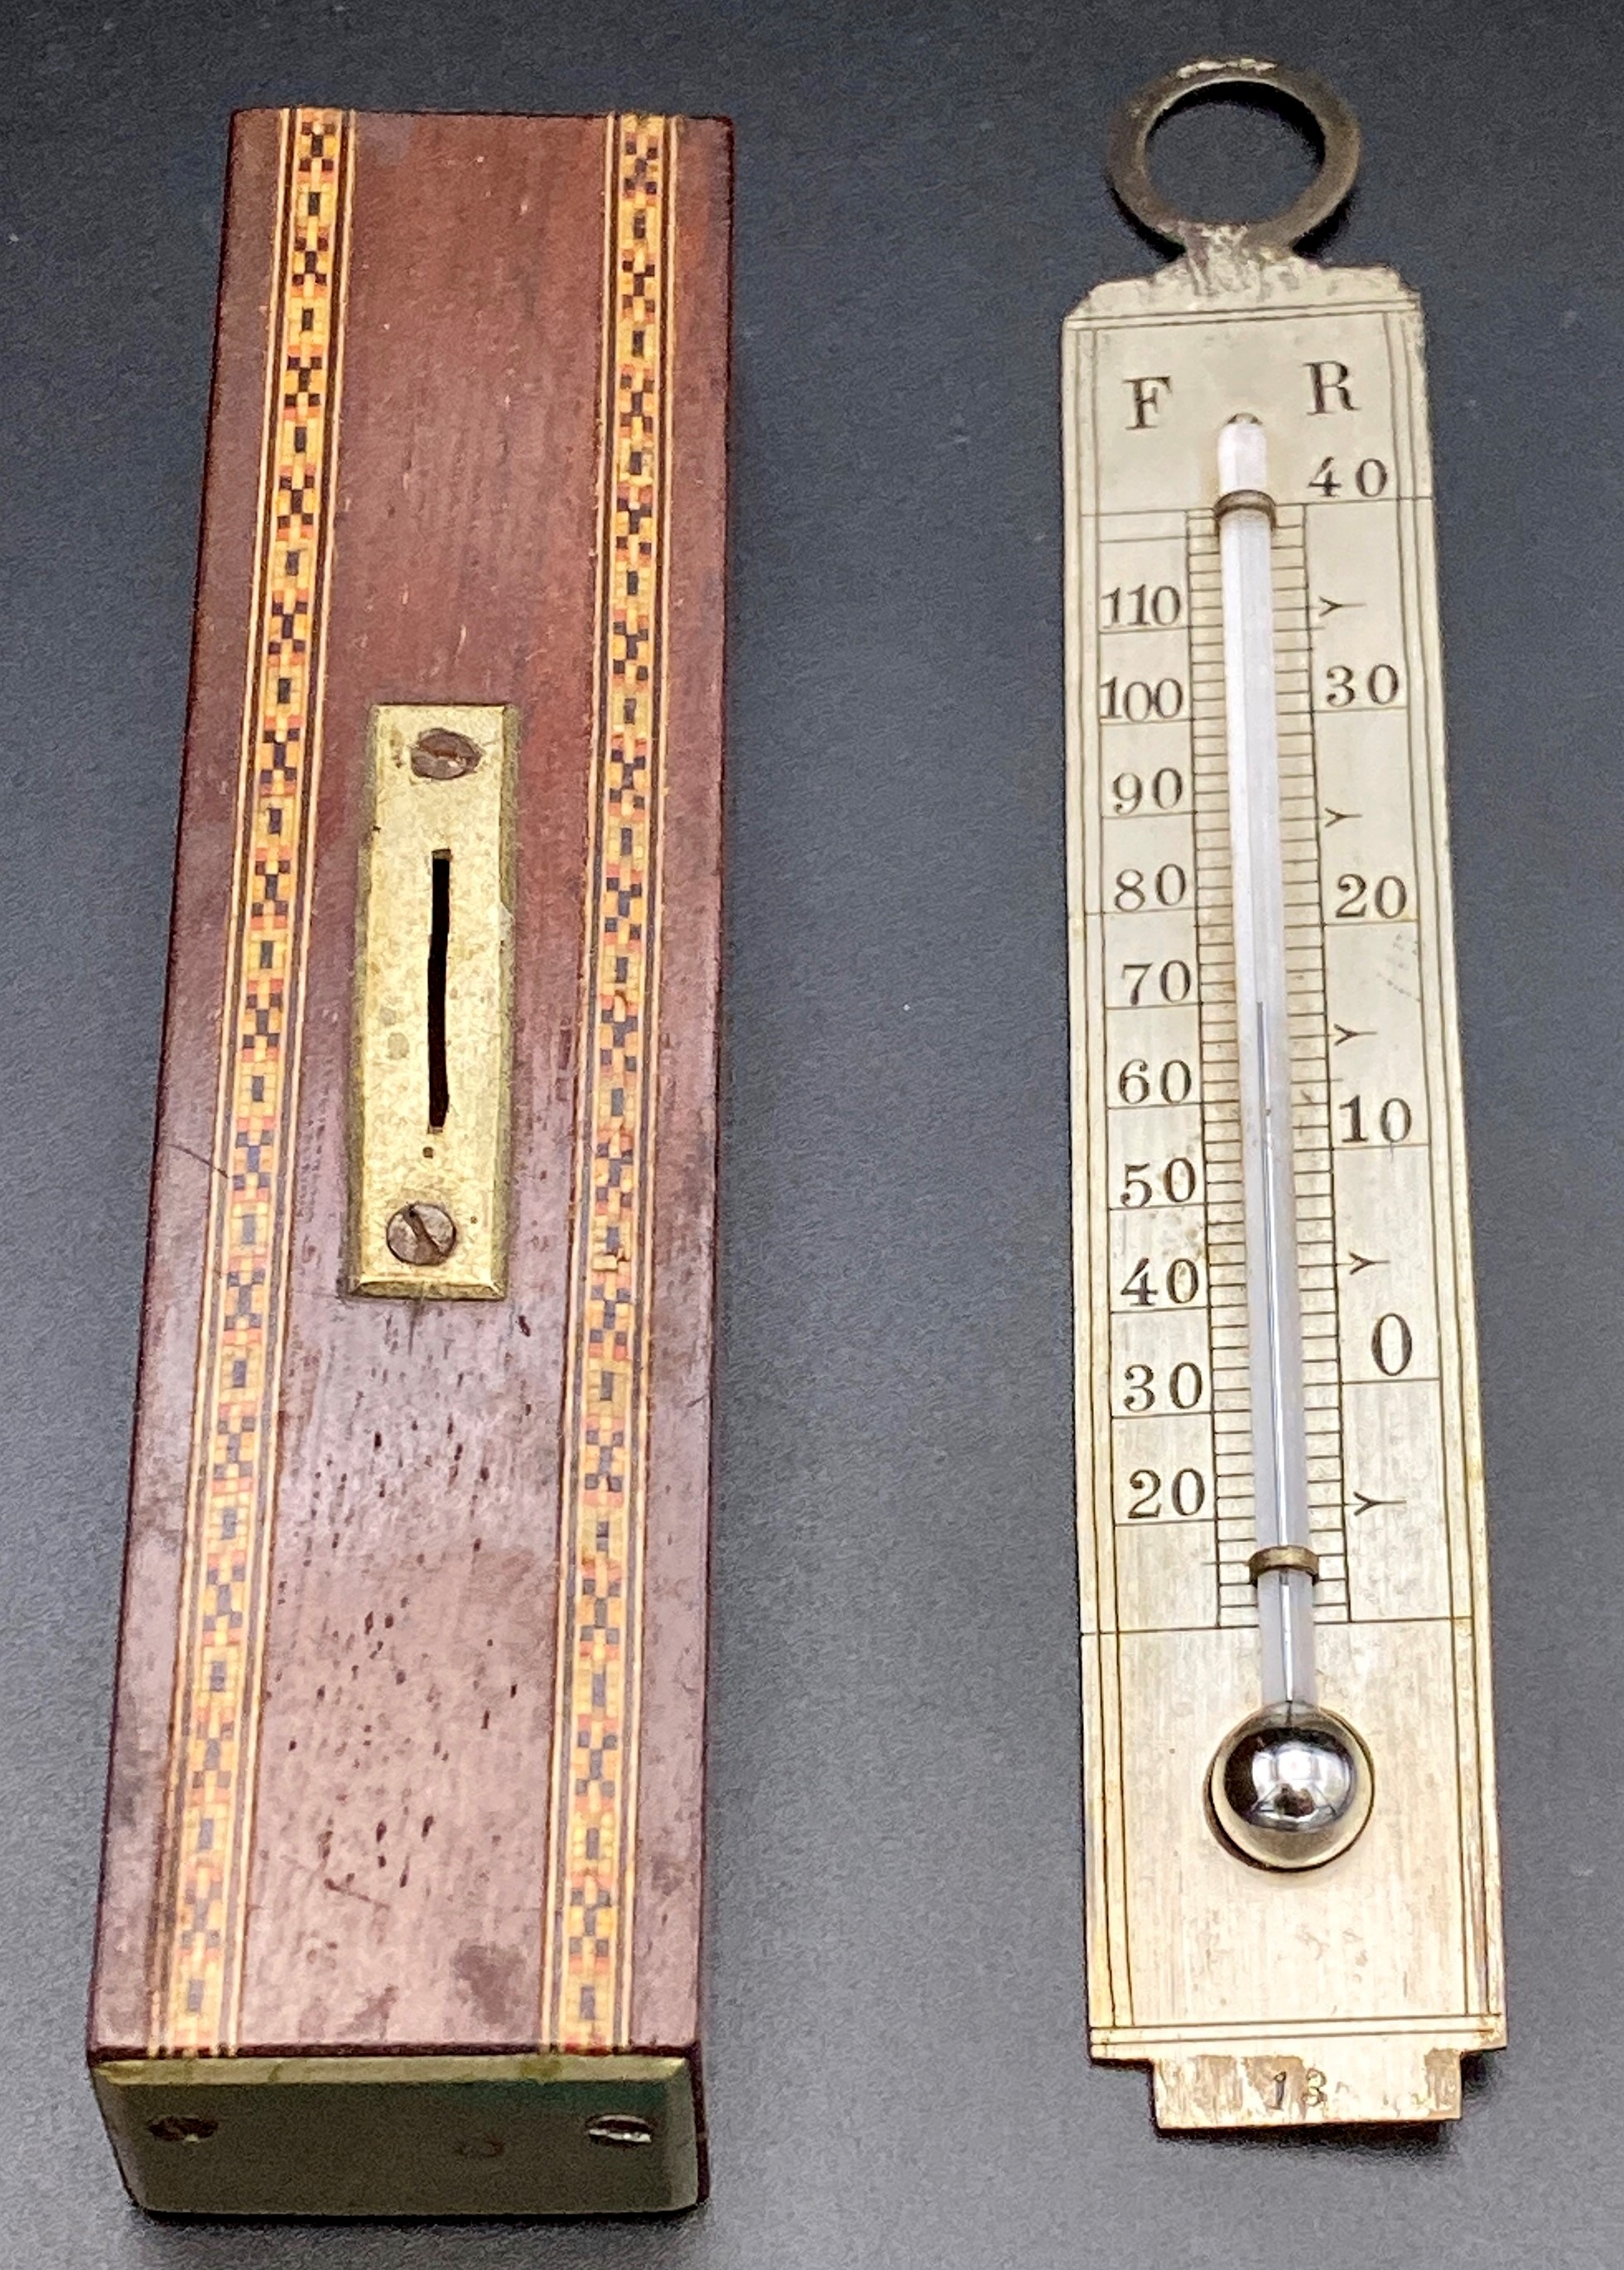 Lot 191 - A Tunbridge ware desk thermometer, the silvered metal scale graduated in Fahrenheit and Reaumur, the